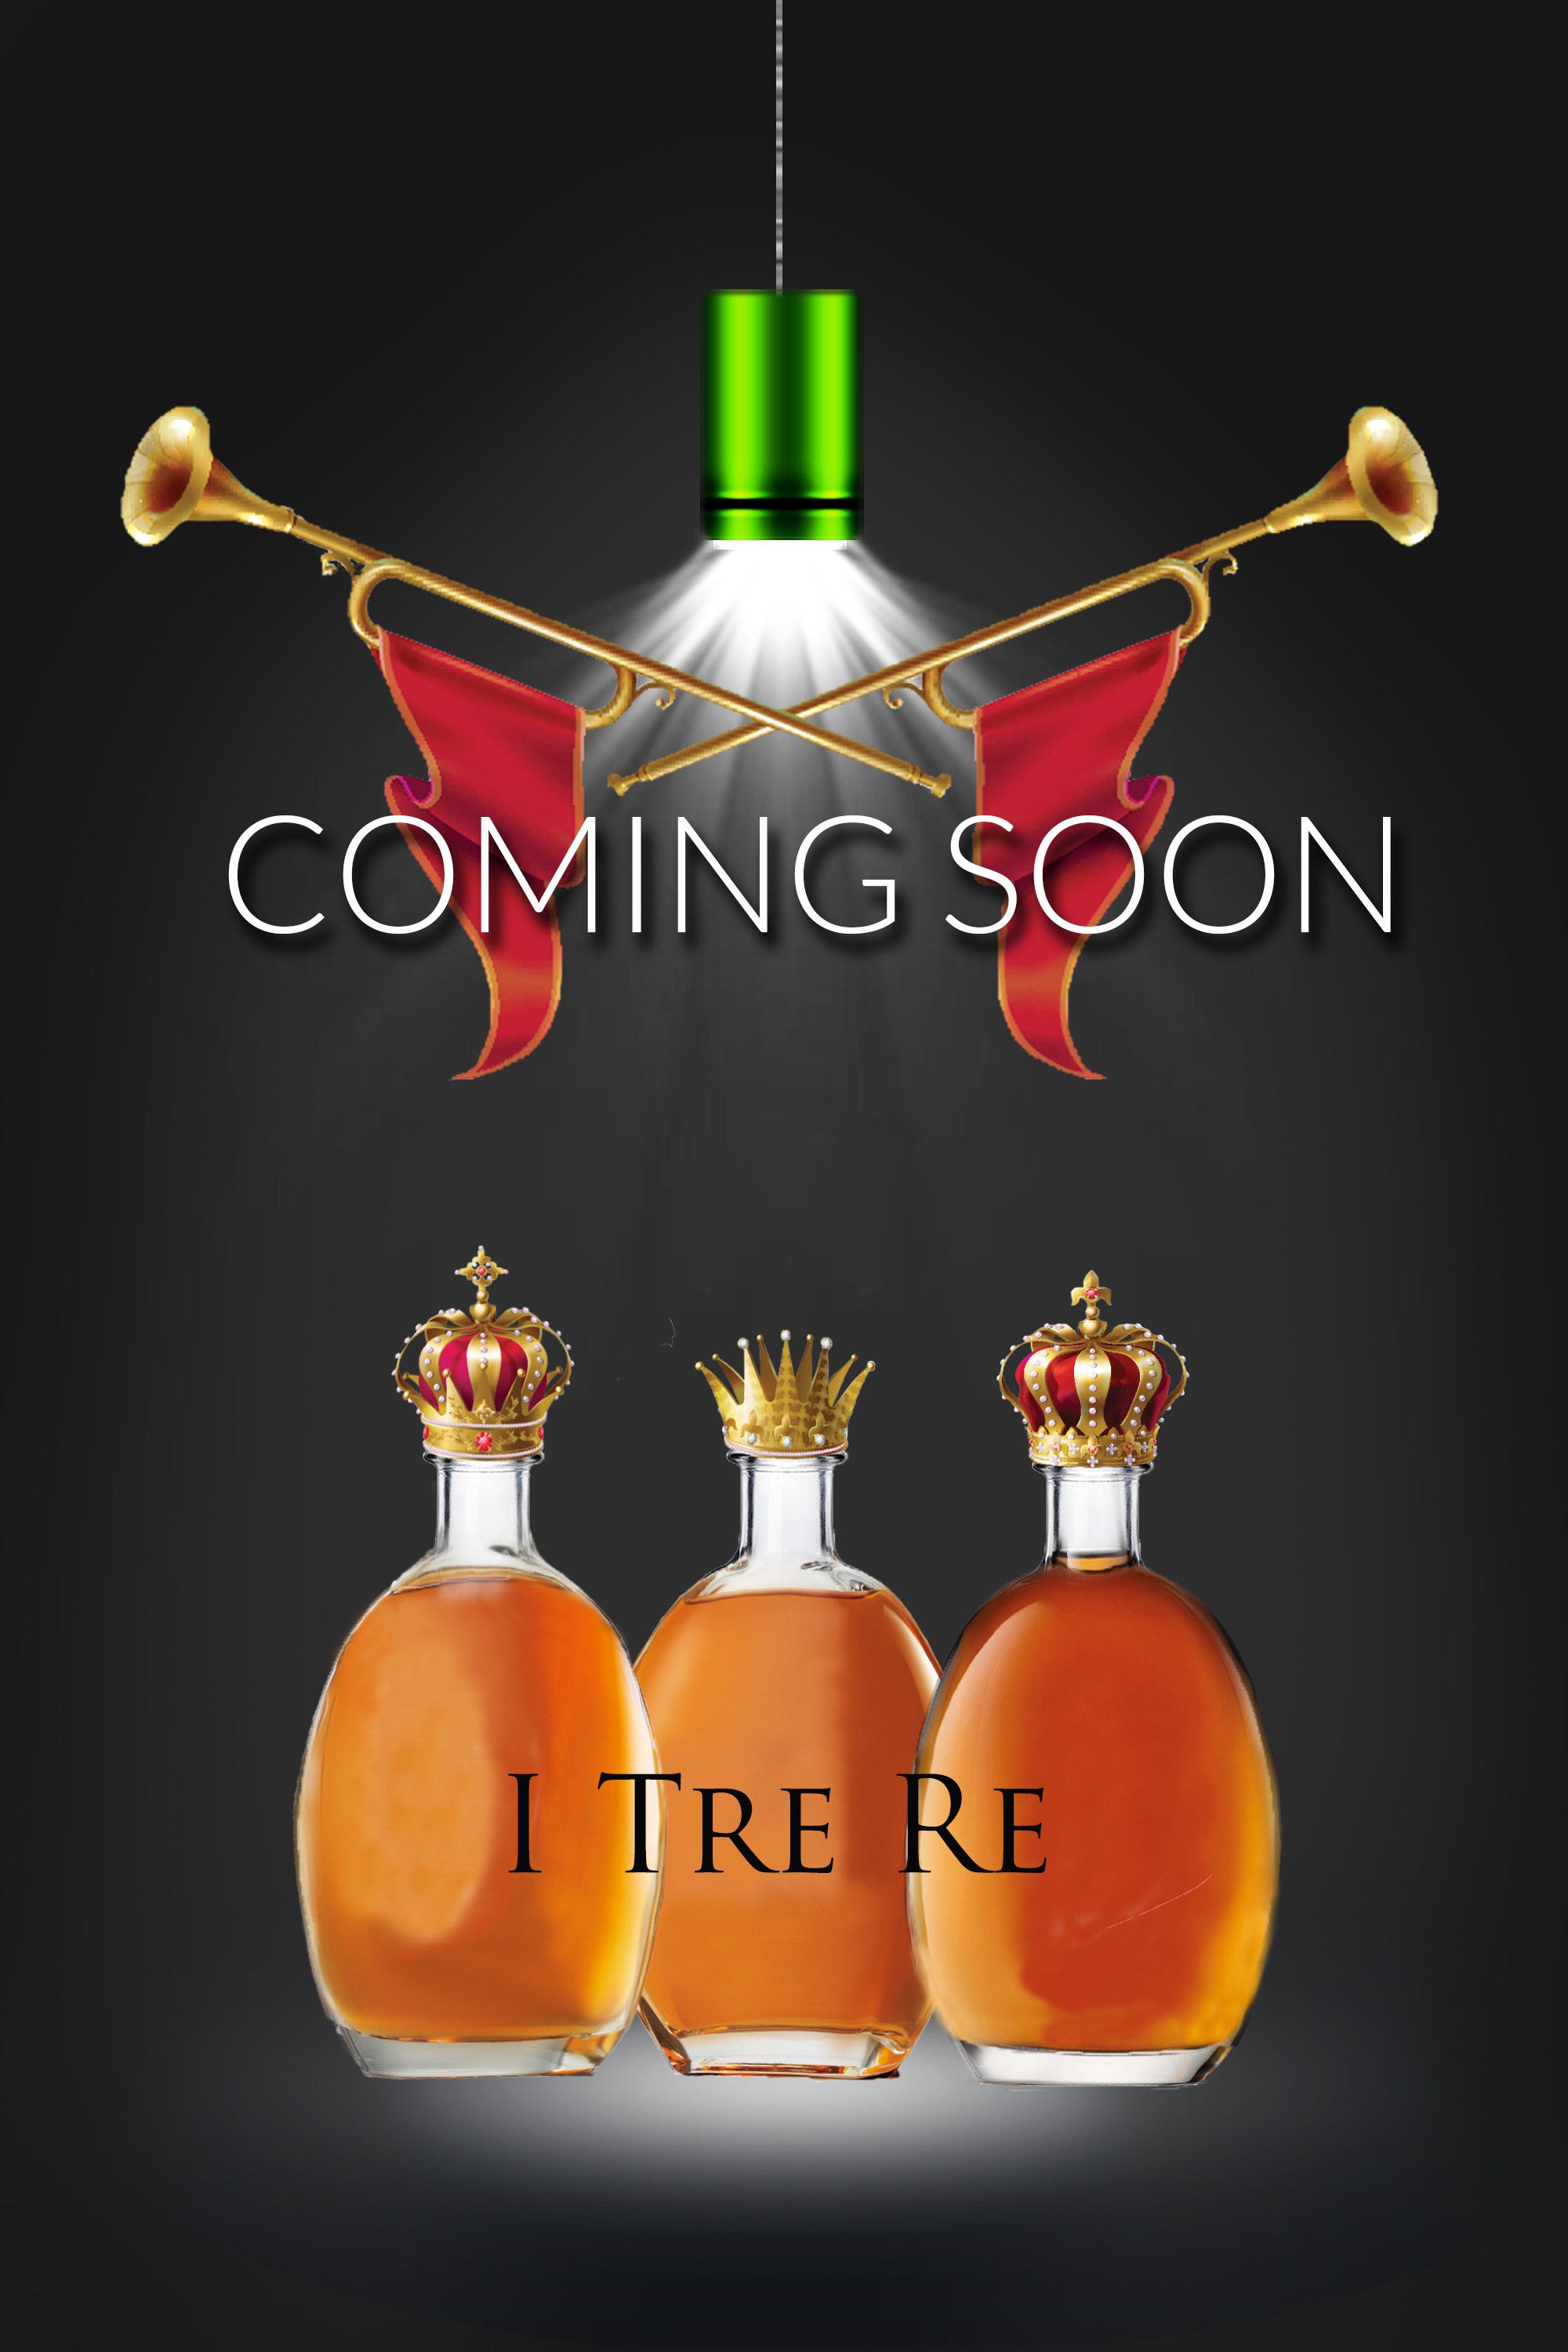 I TRE RE by DOMENIS1898 in arrivo!